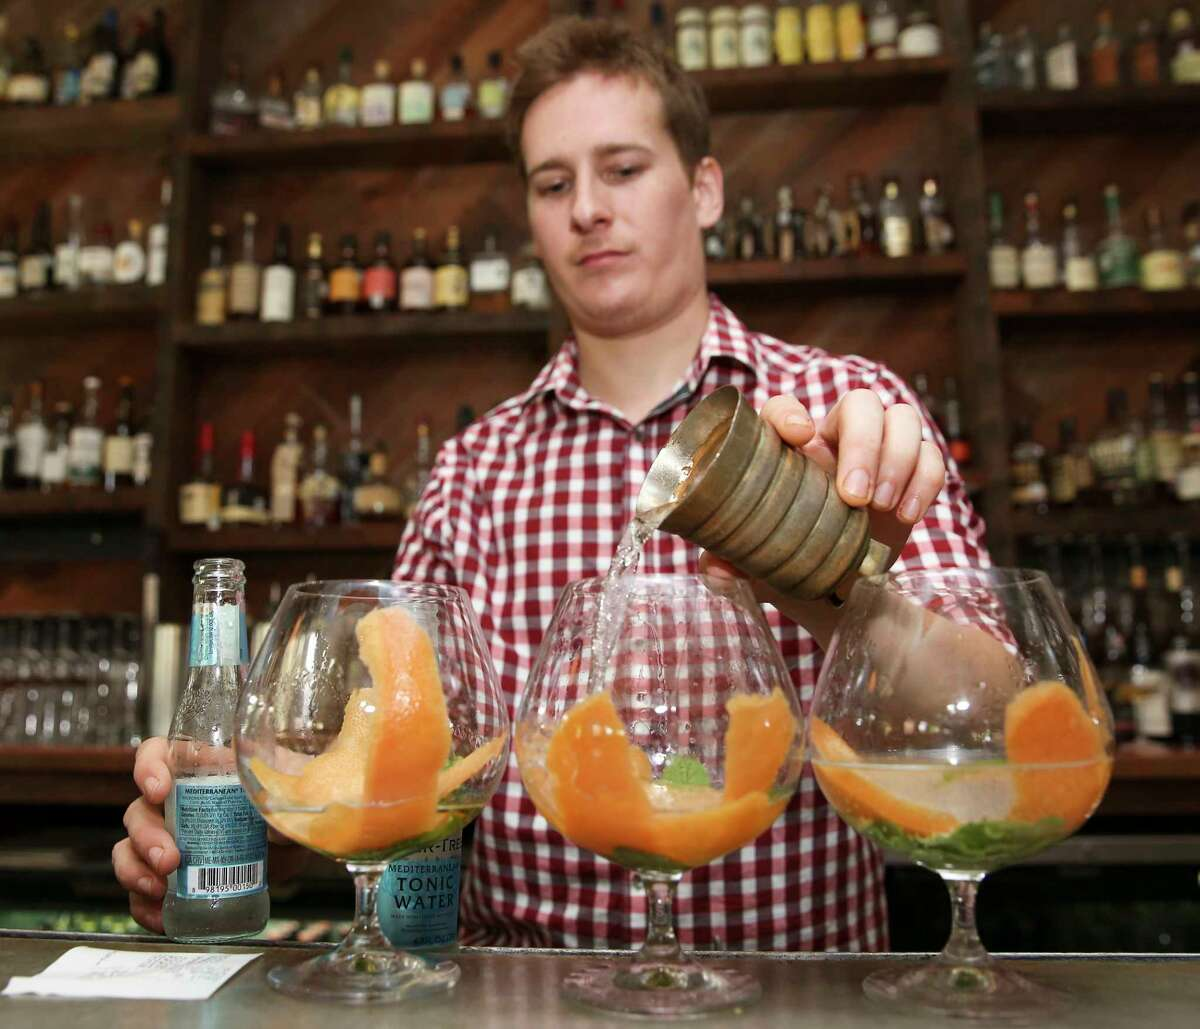 Coltivare bartender William Stewart makes three orders of gin and tonic, the most popular drink at the restaurant, at the bar Friday, June 9, 2017, in Houston.